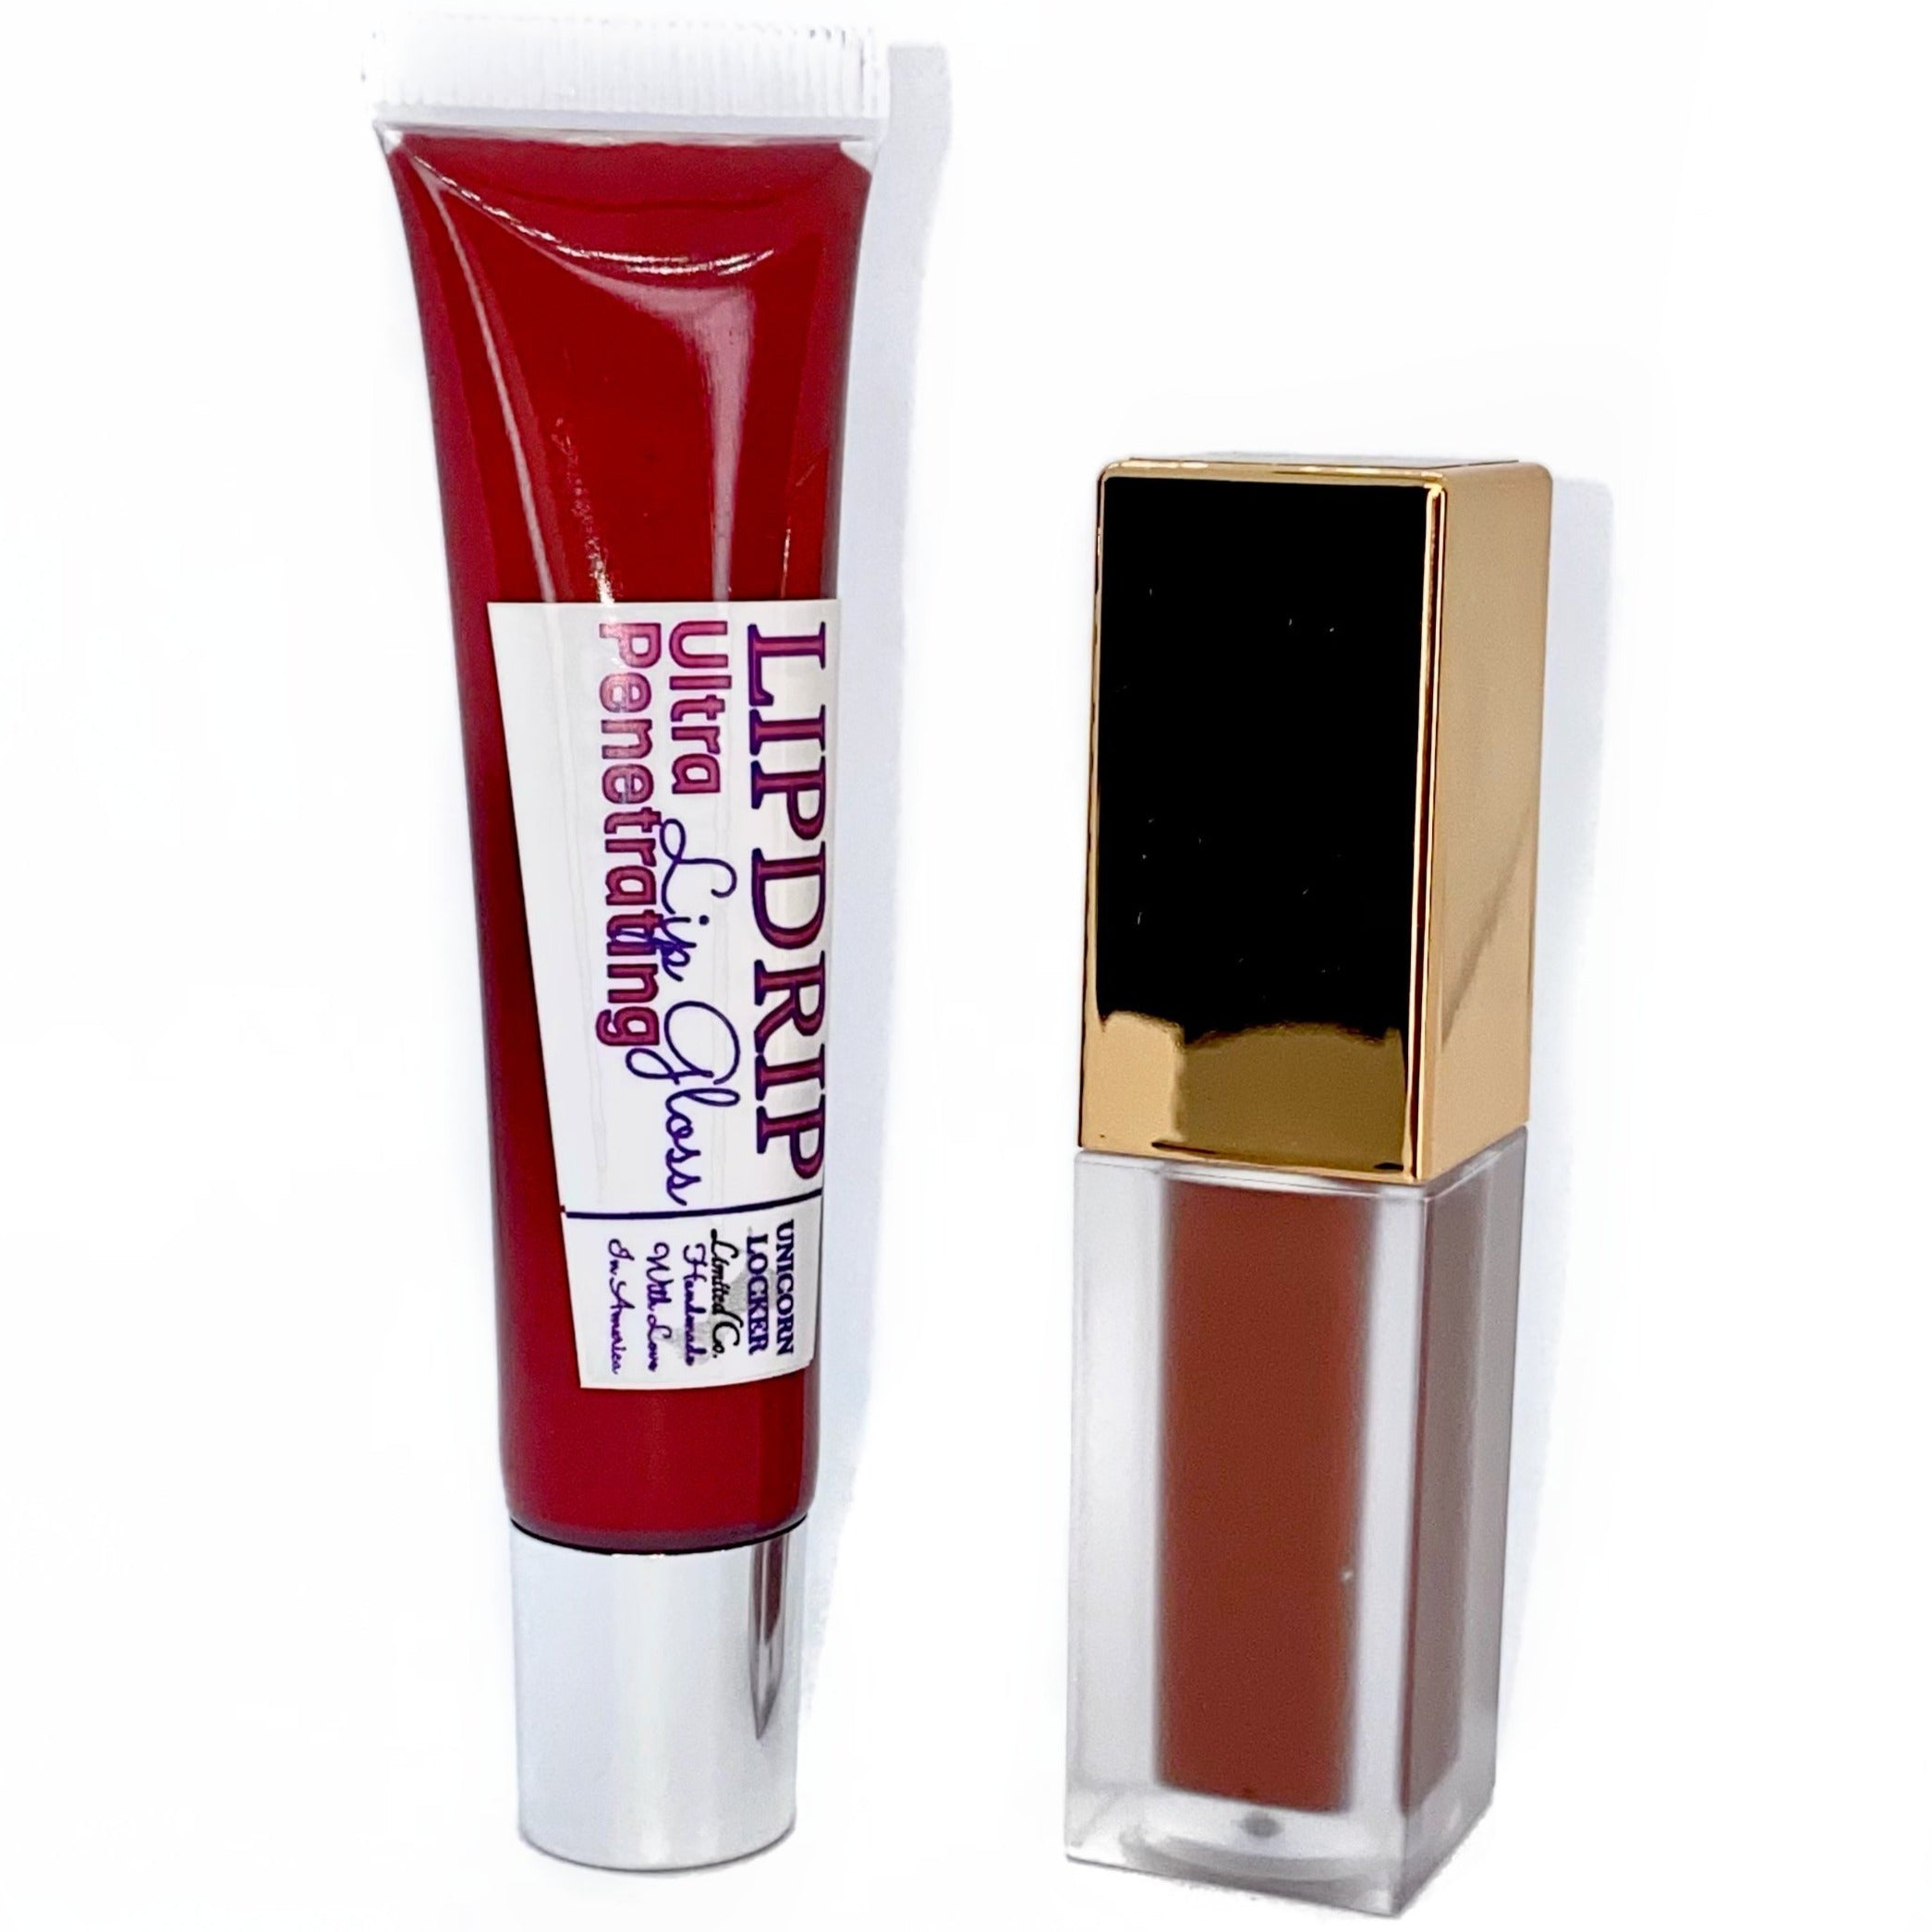 Holiday Lipkit Duo (Hot Chocolate) - Lipgloss lipstick eyeshadow glitter blush highlighter foundation